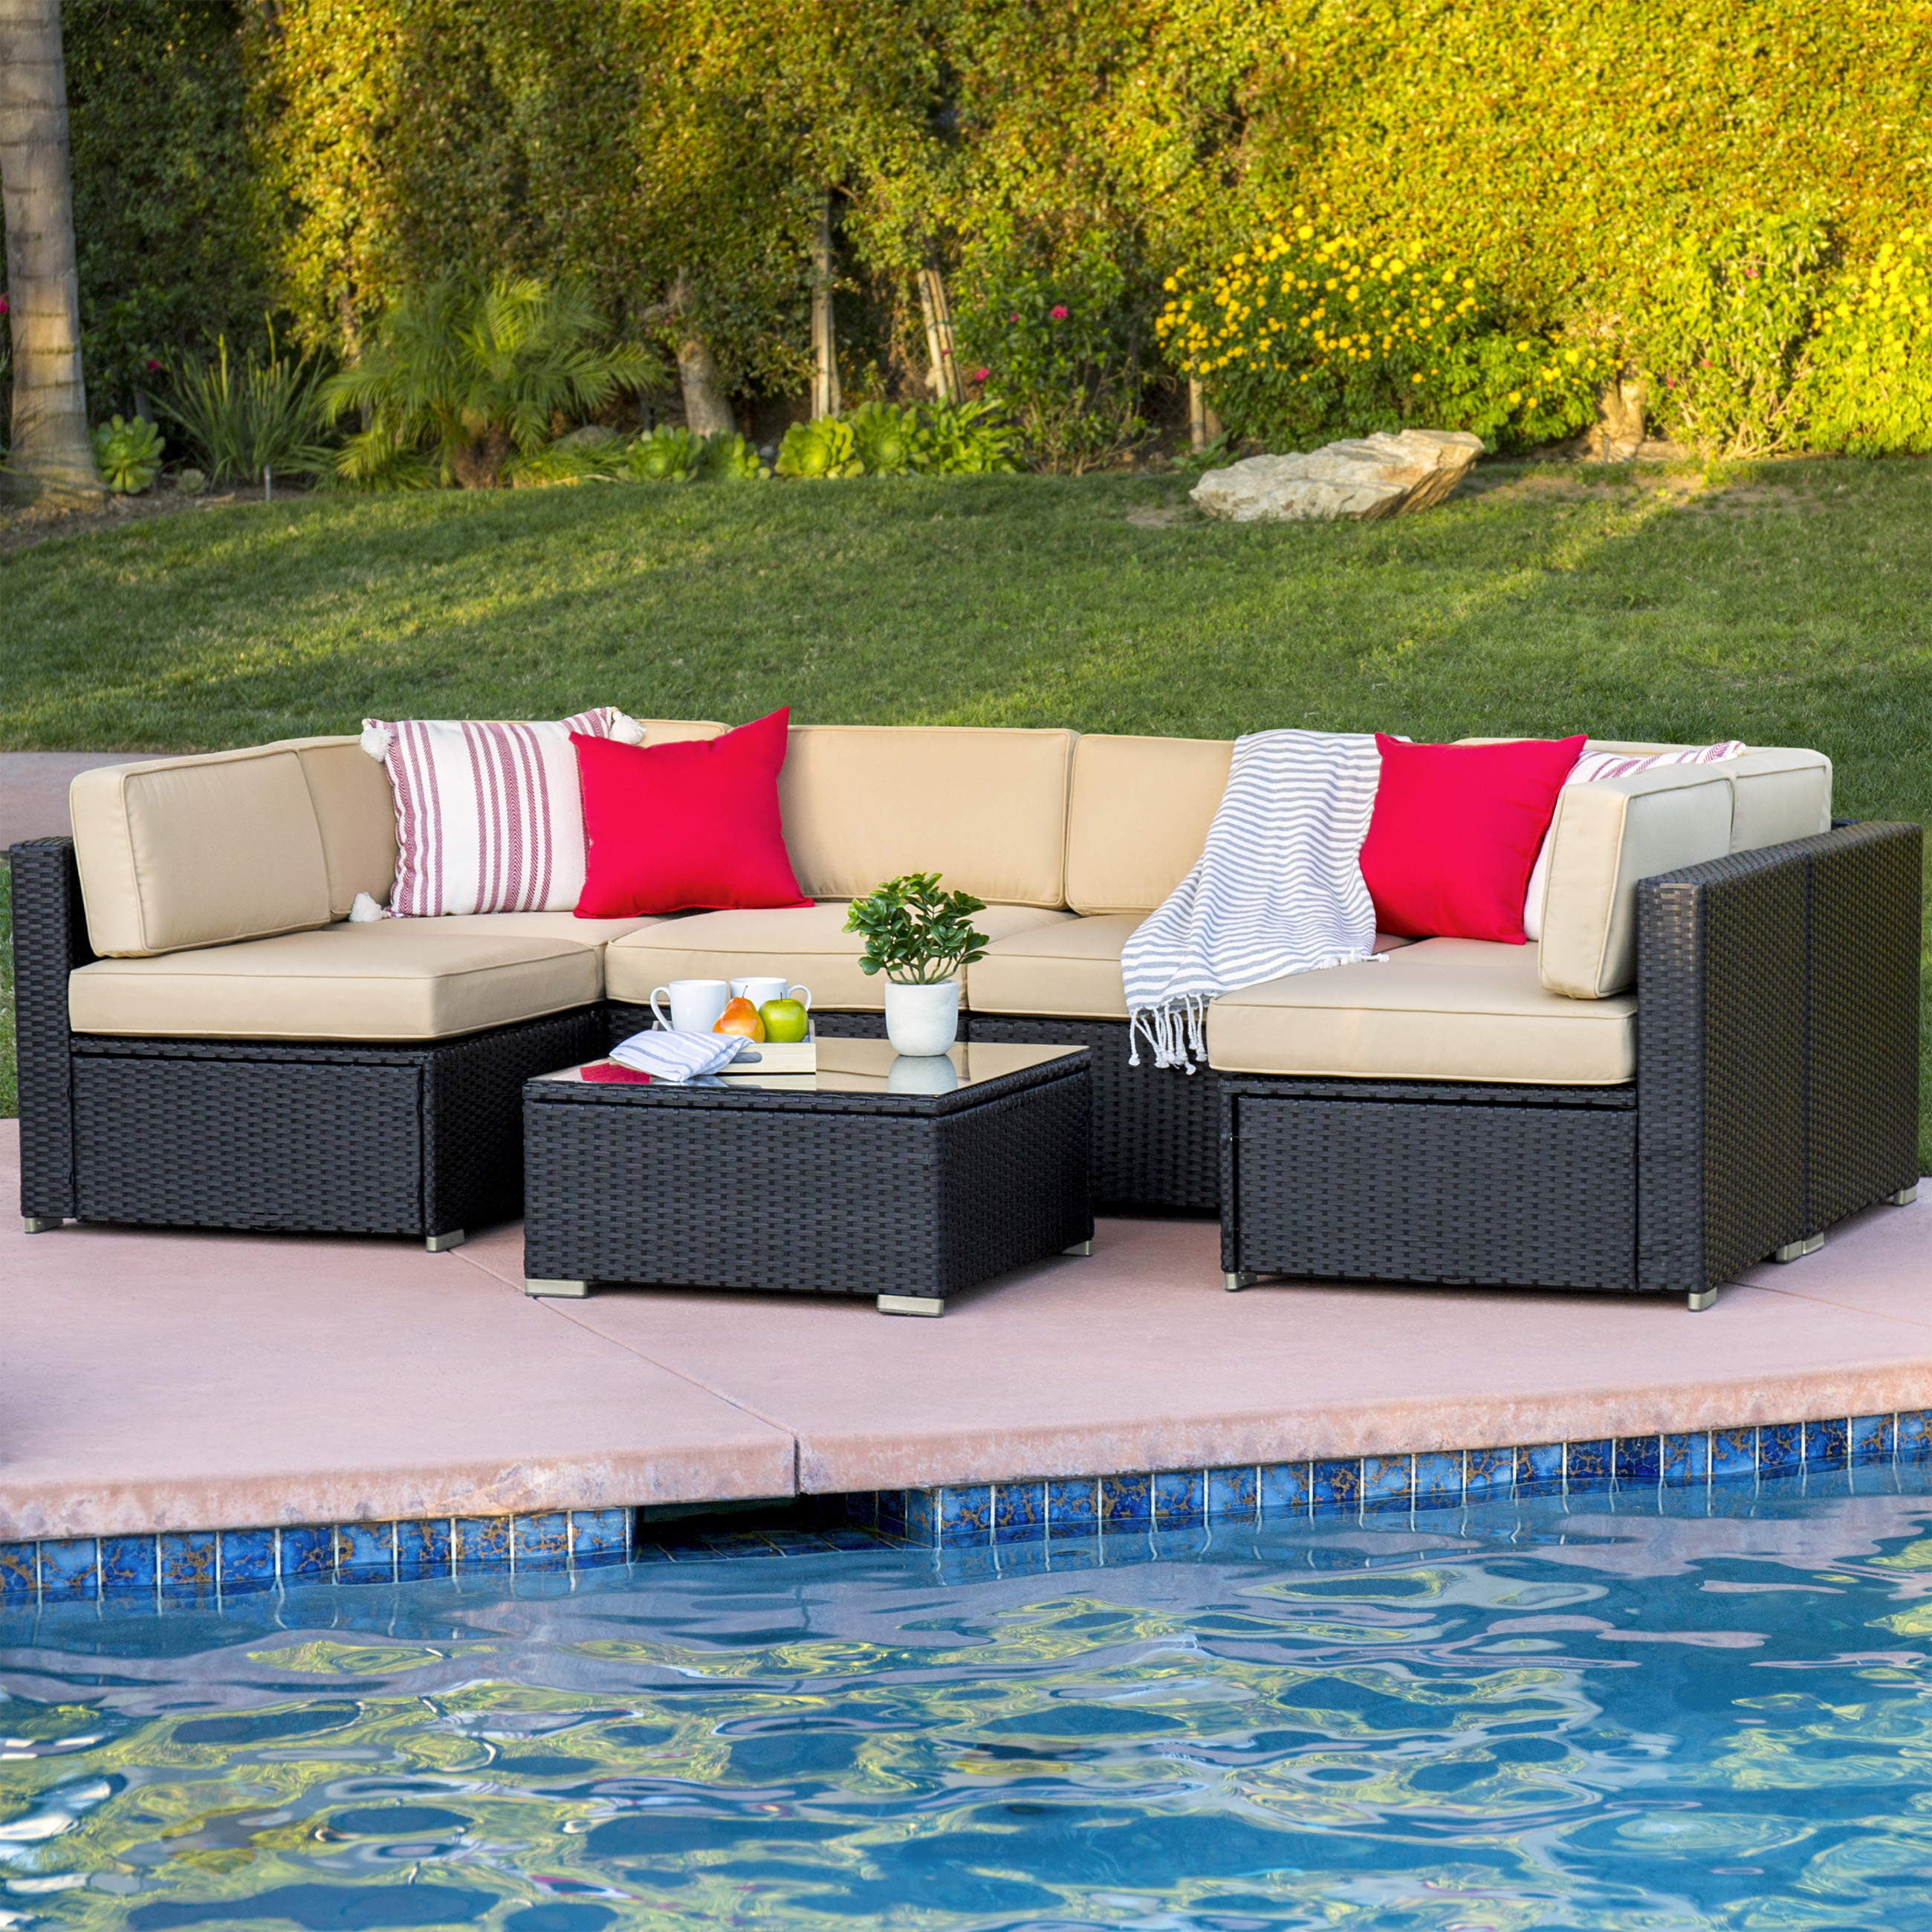 Common uses of outdoor wicker furniture